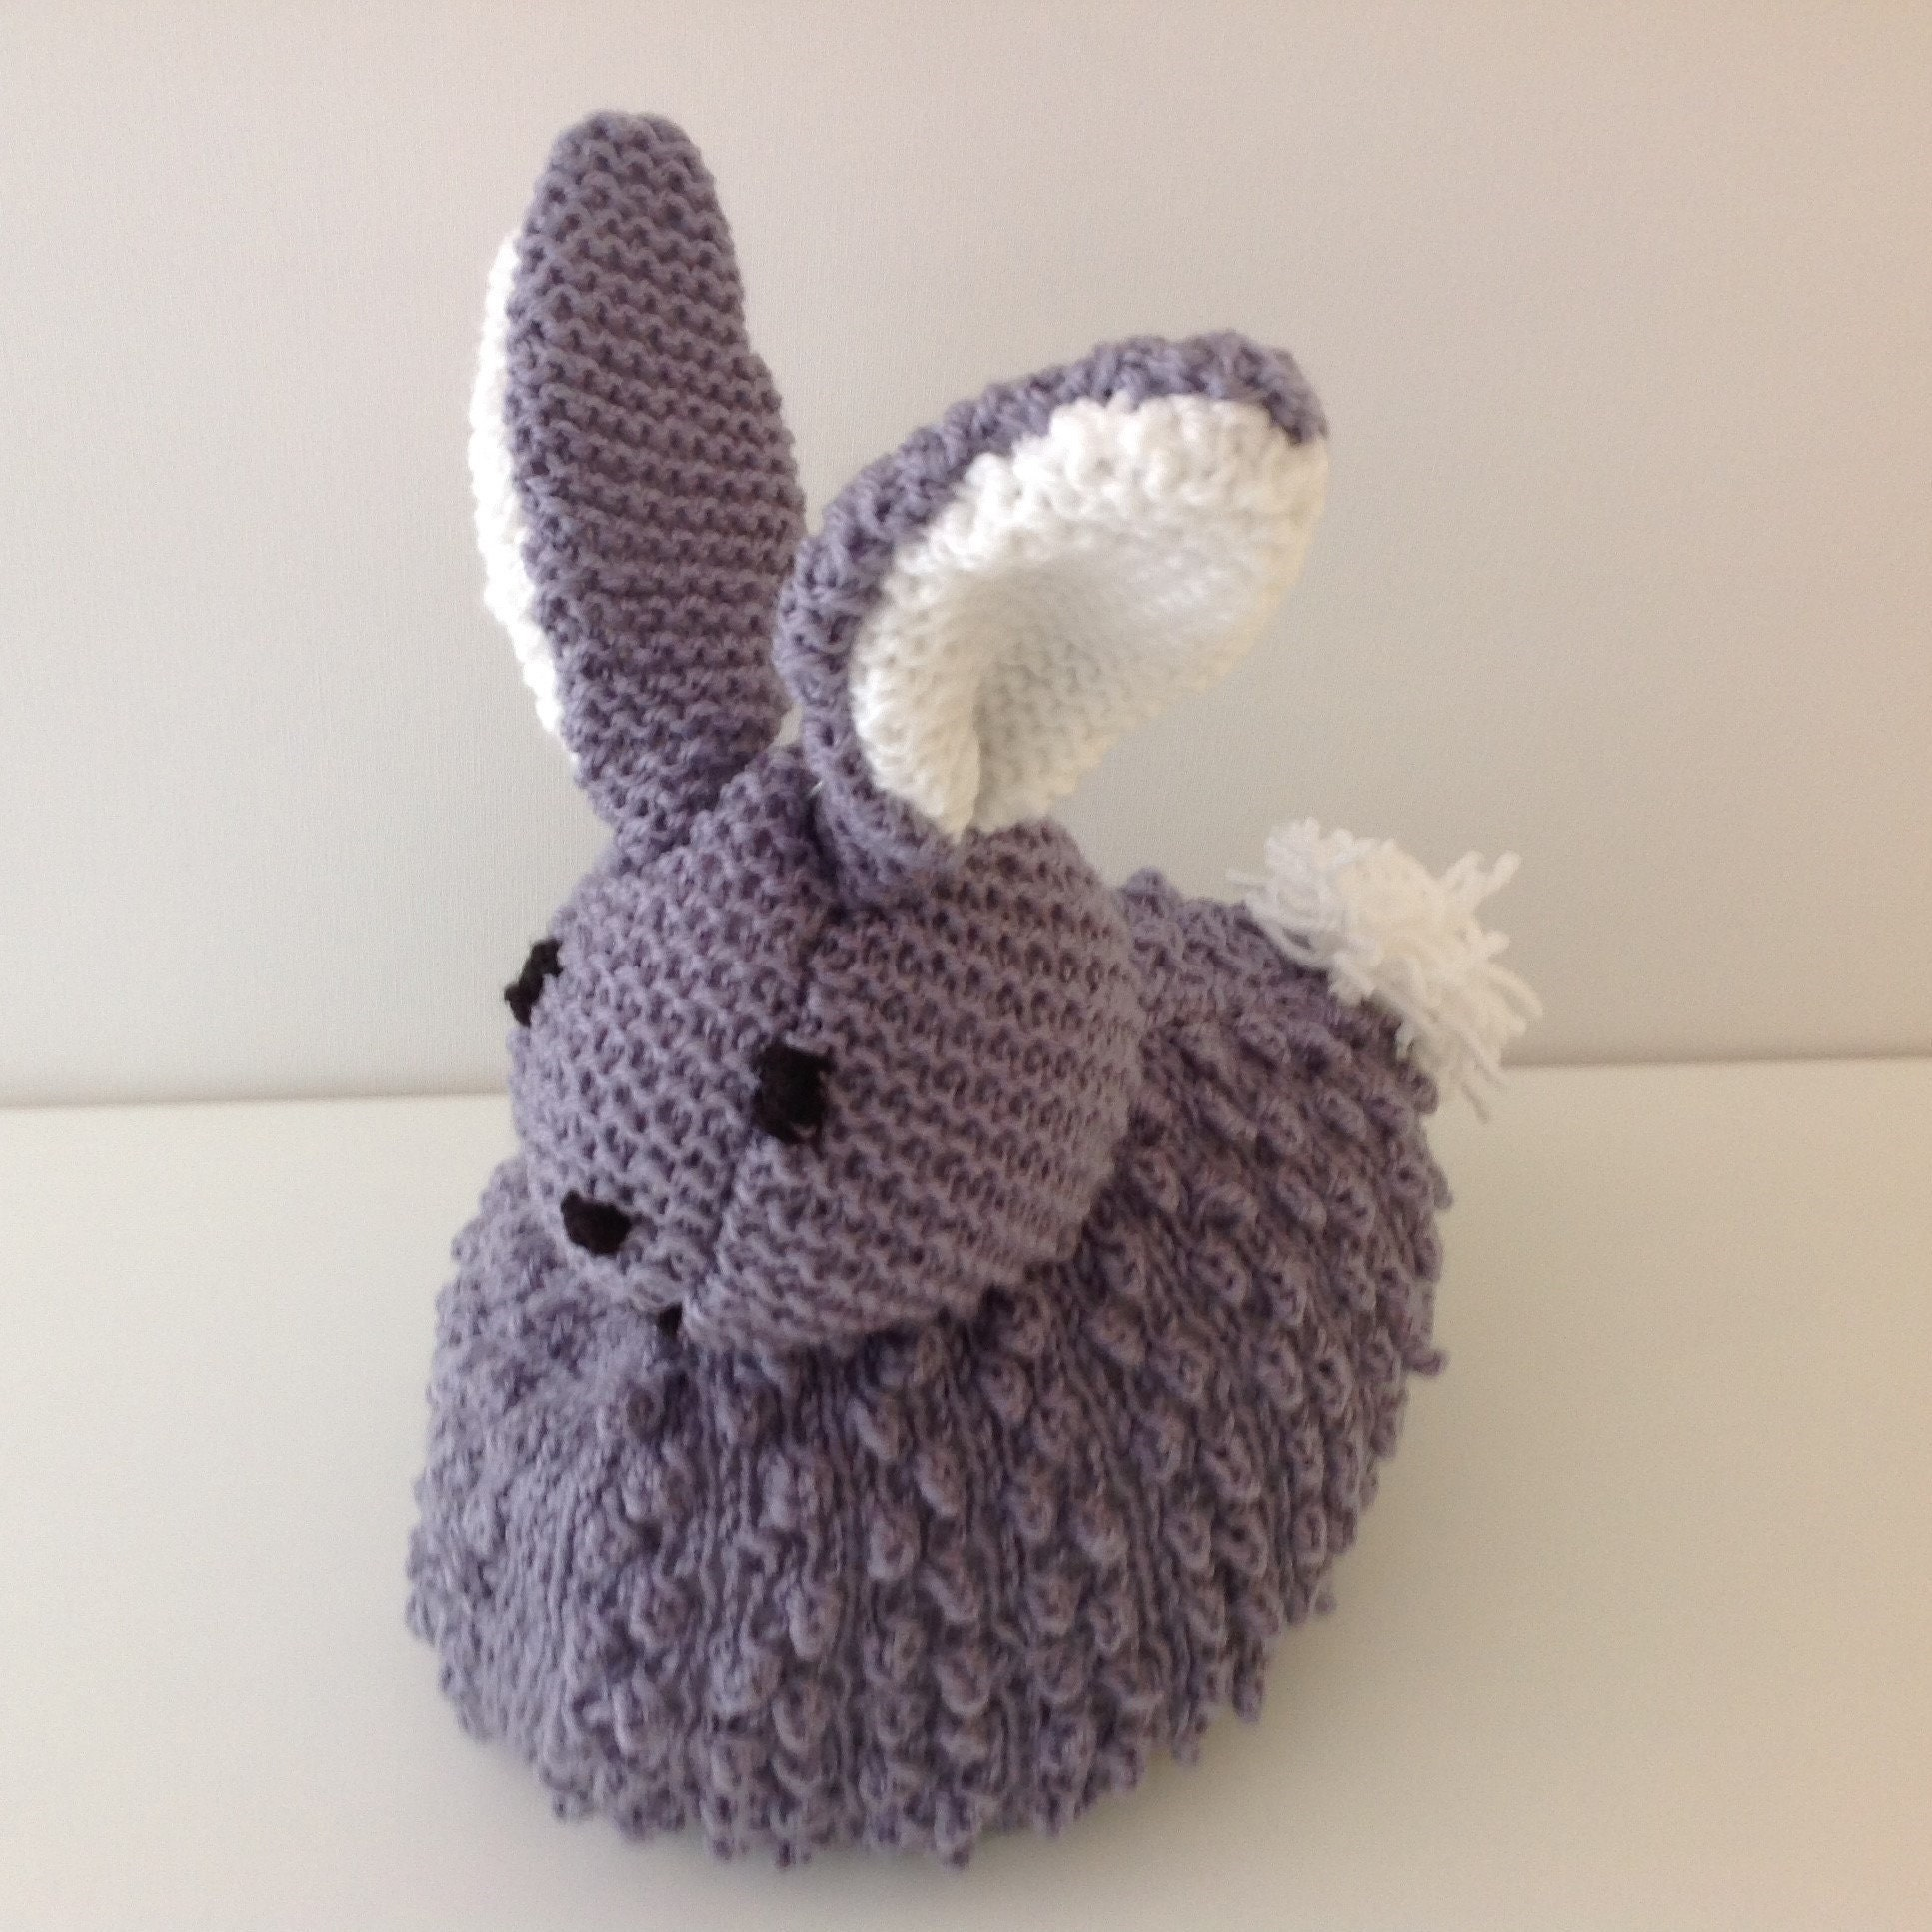 Peter rabbit doorstop knitting pattern easter knitting pattern peter rabbit doorstop knitting pattern easter knitting pattern handmade bunny pattern knitted gift download pdf negle Image collections